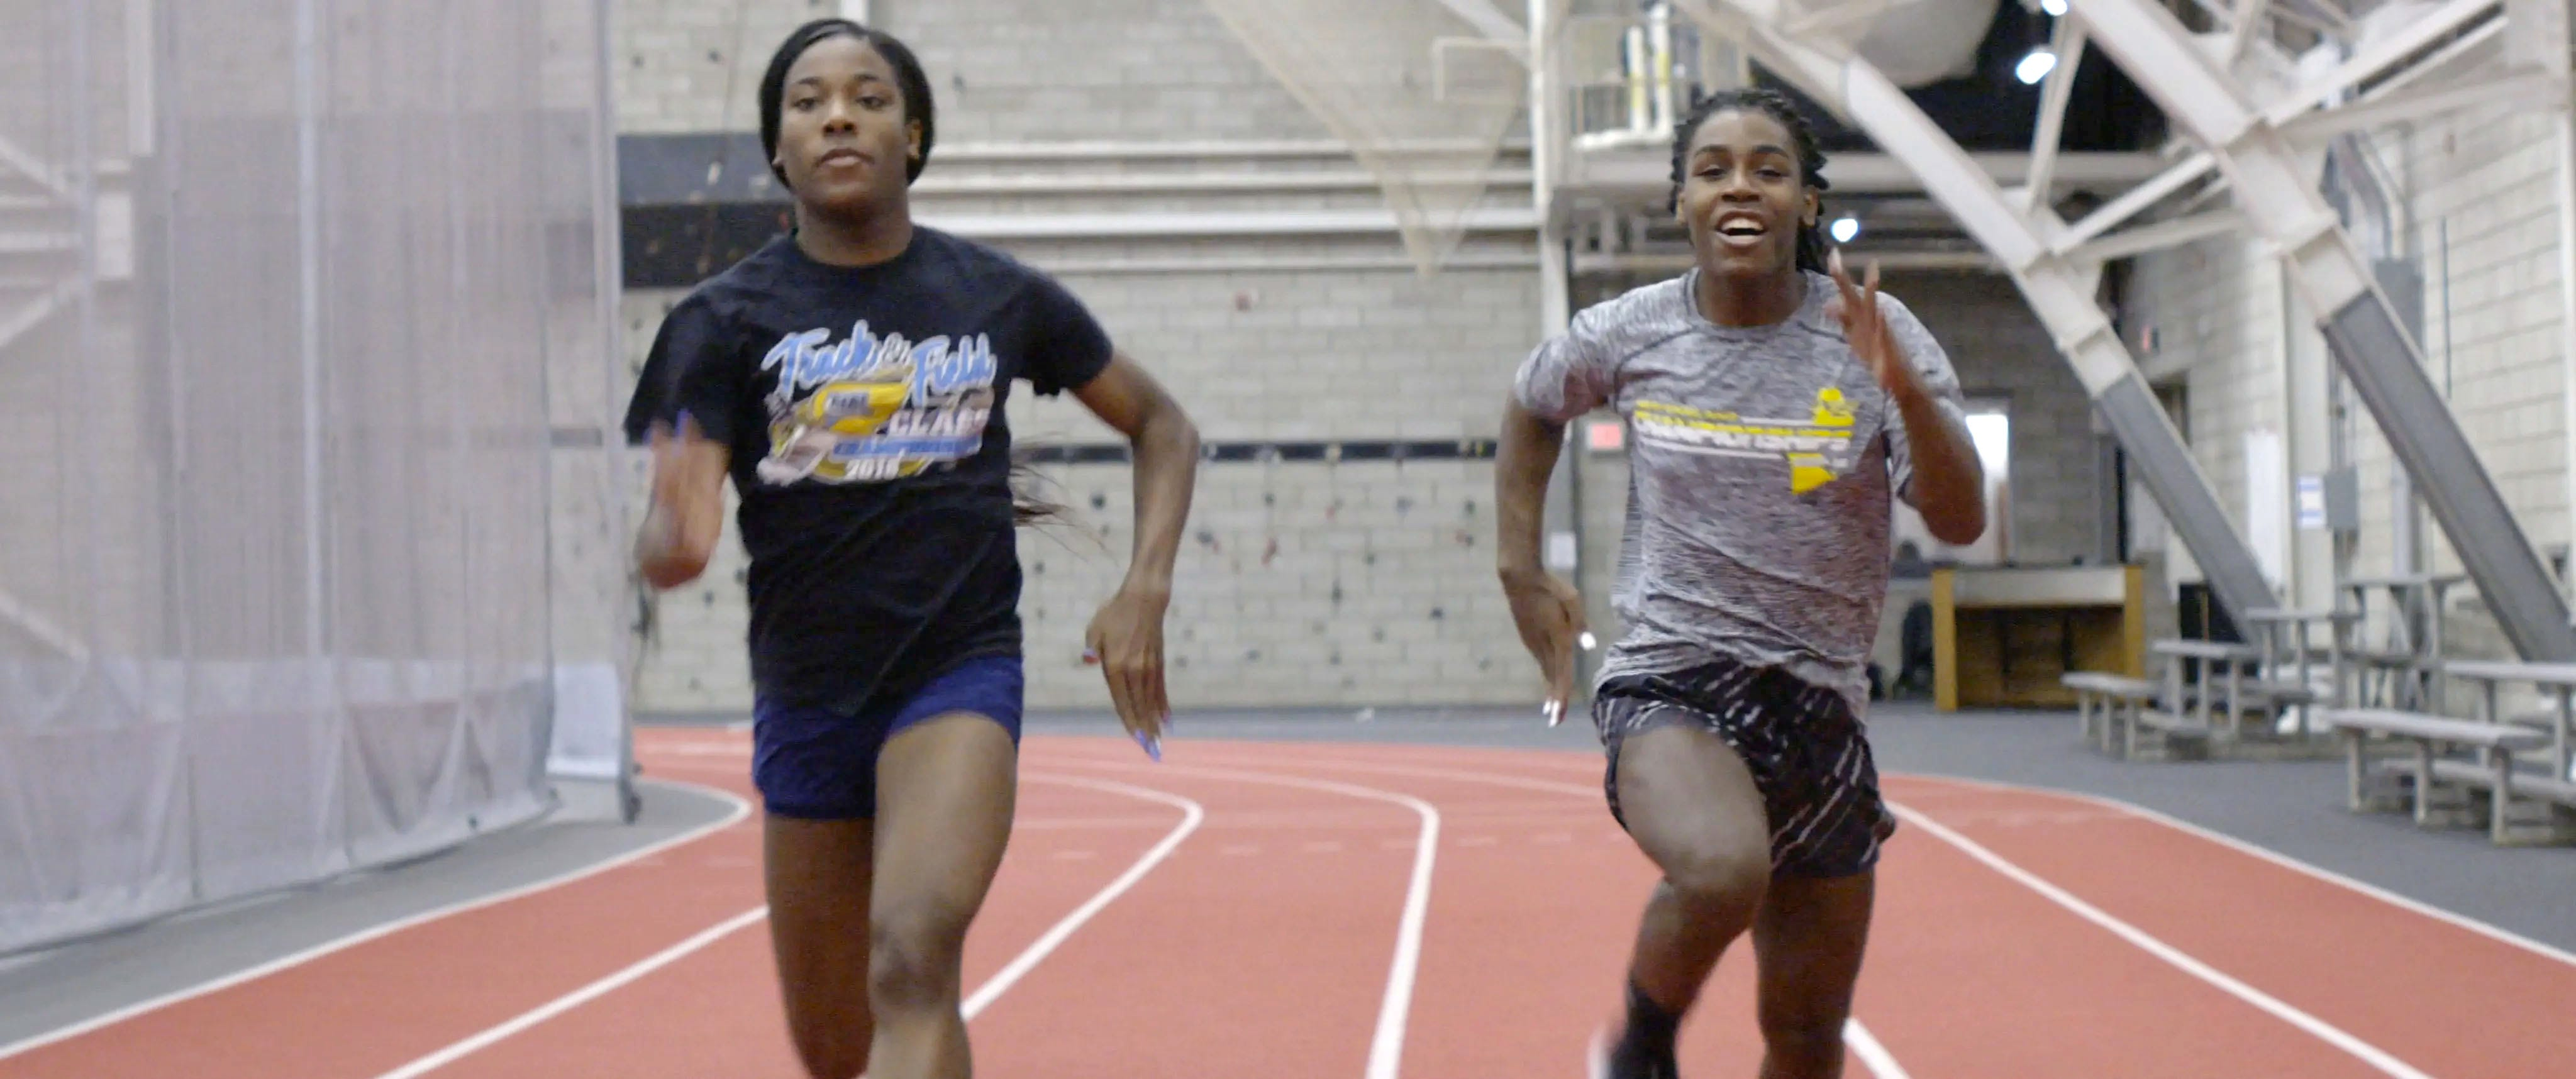 Between them, high school runners Andraya Yearwood (right) and Terry Miller (left) won 15 Connecticut girls' track titles from 2017 to 2019. A federal judge threw out a lawsuit that challenged the state athletic association rules that allowed them to compete.